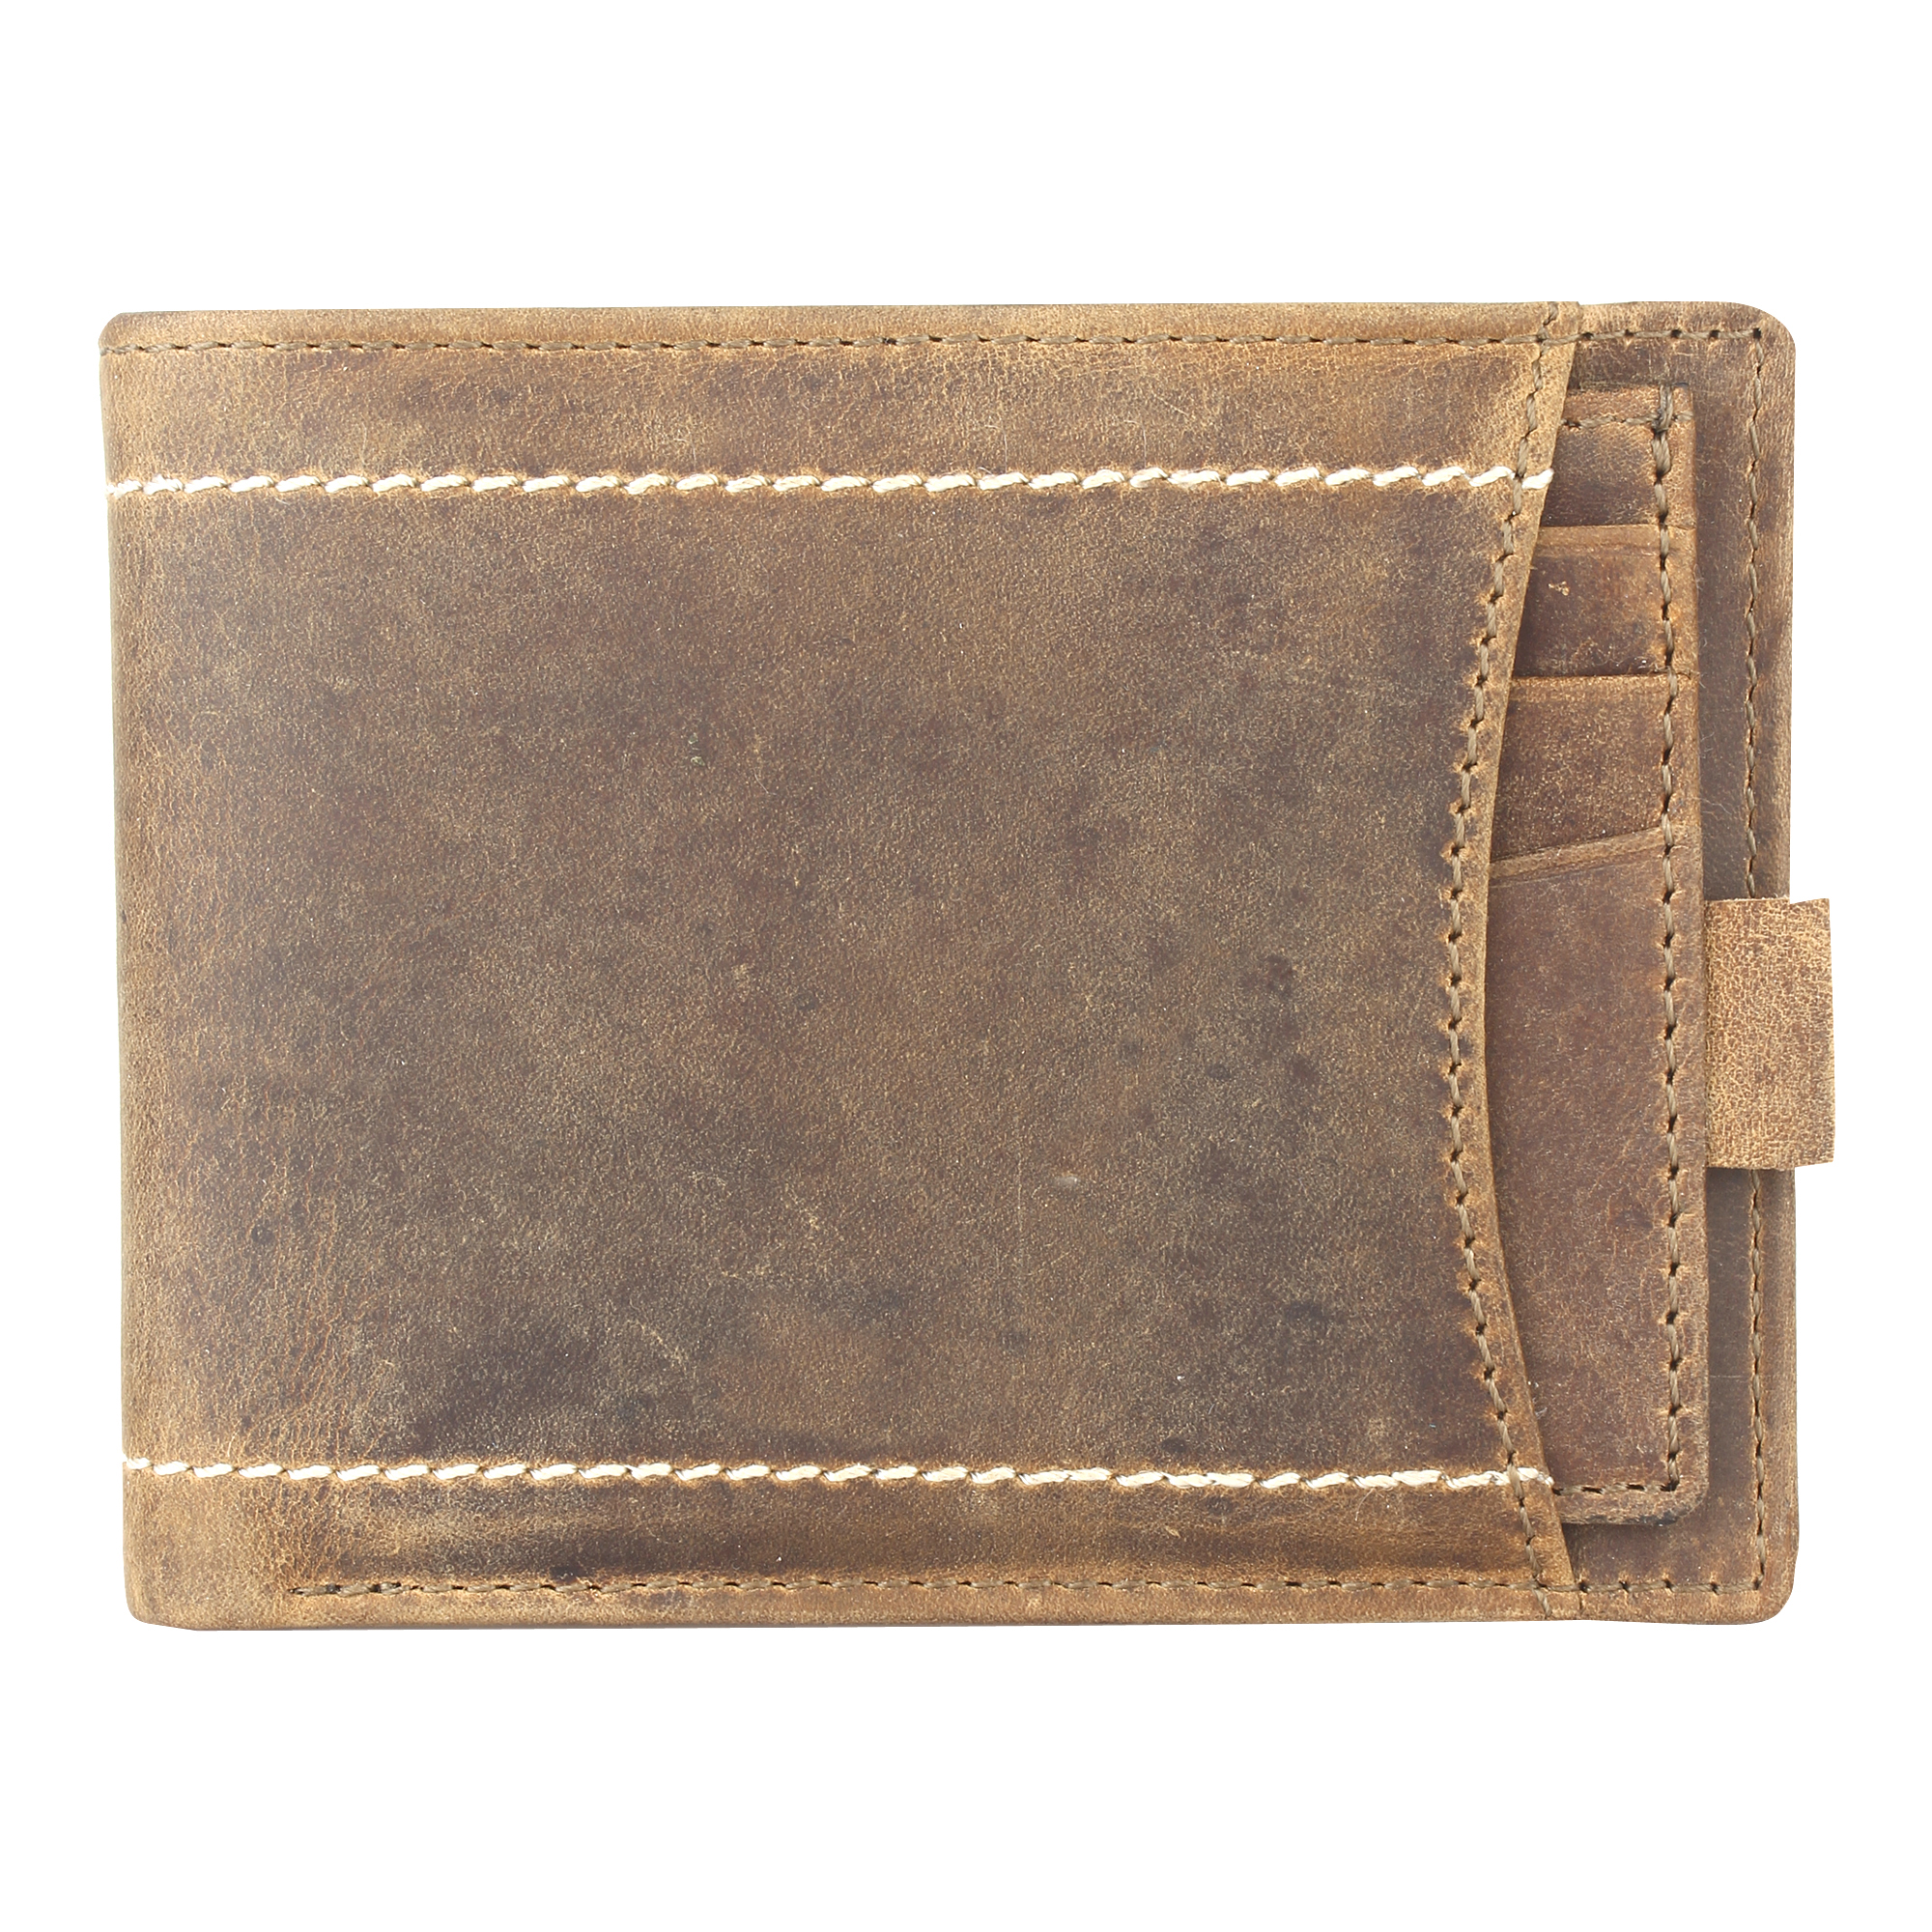 Leather Wallets Manufacturers in Romania, Leather Wallets Suppliers in Romania, Leather Wallets Wholesalers in Romania, Leather Wallets Traders in Romania, custom leather wallet manufacturers in Romania, Leathe